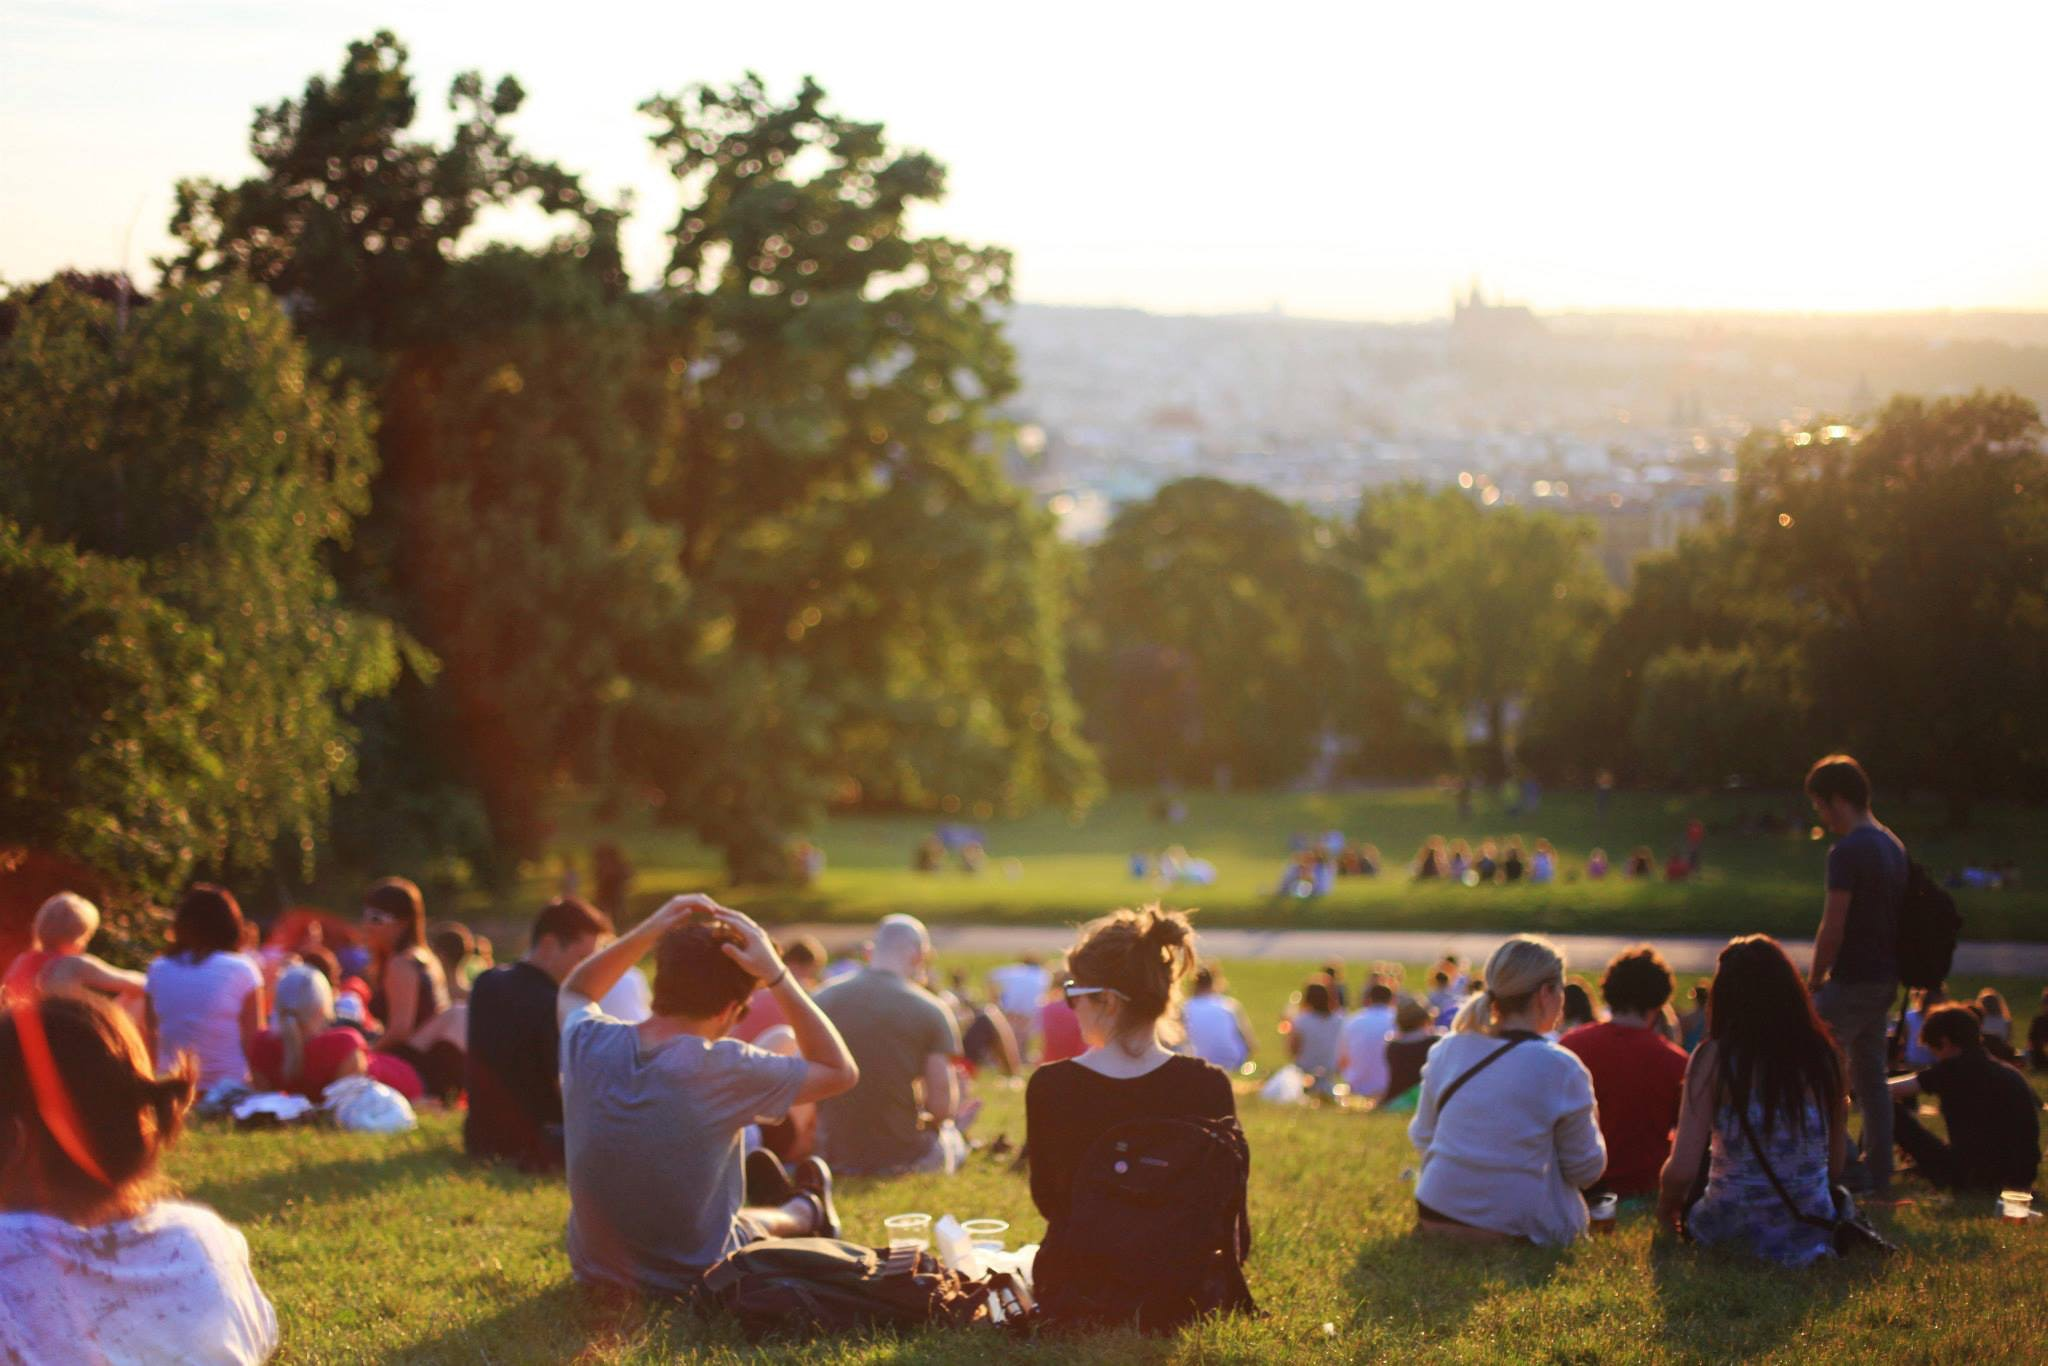 Will Public Spaces Change After Isolation?